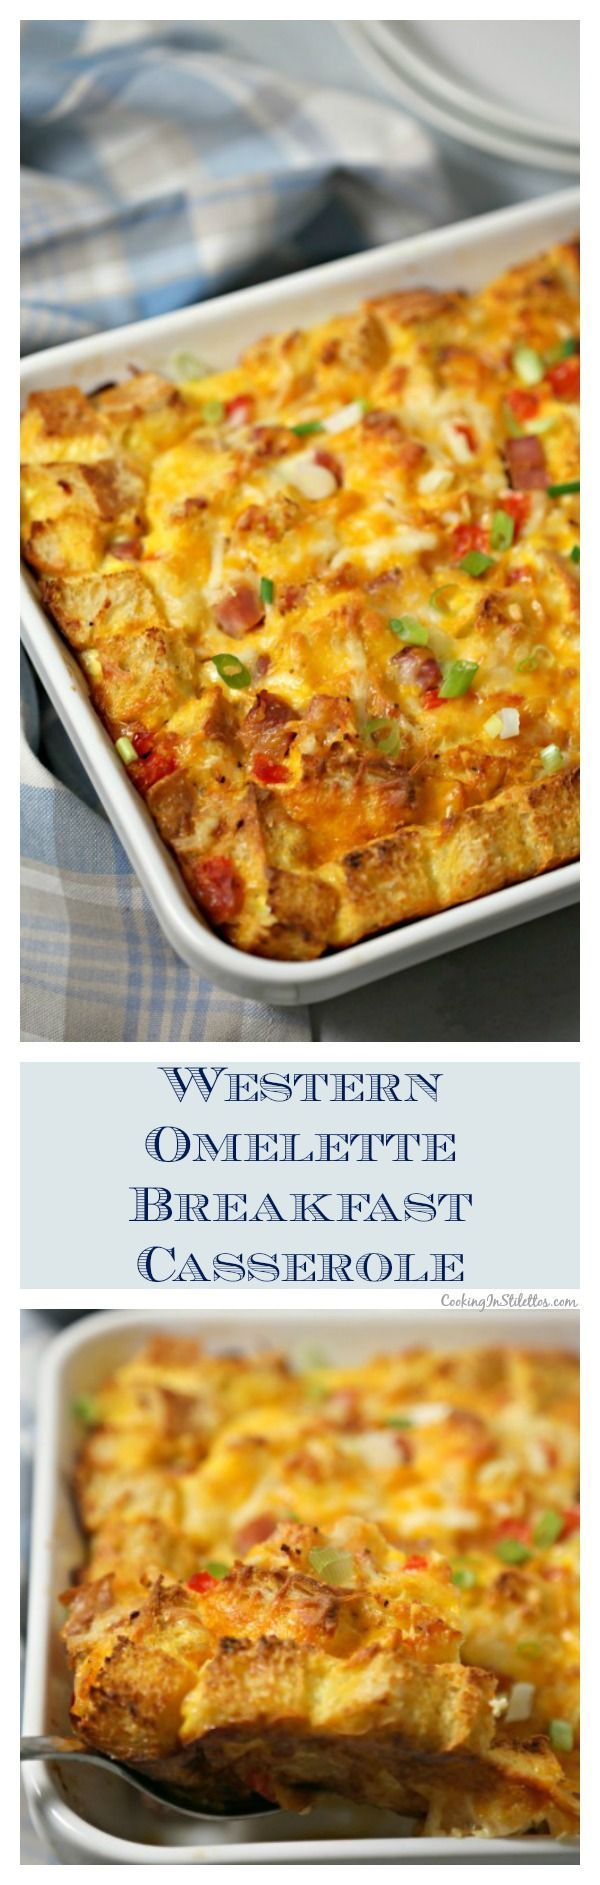 For brunch this holiday season, whip up this easy and delicious Western Omelette Breakfast Casserole, packed with the flavors of the classic diner omelette made with Eggland's Best Eggs!  You can even use that leftover holiday ham in this delicious brunch recipe. #sponsored #TheBetterEgg #OnlyEB #BreakfastCasserole  | Ham | Eggs |  Comfort Food | Western Omelette via @CookInStilettos